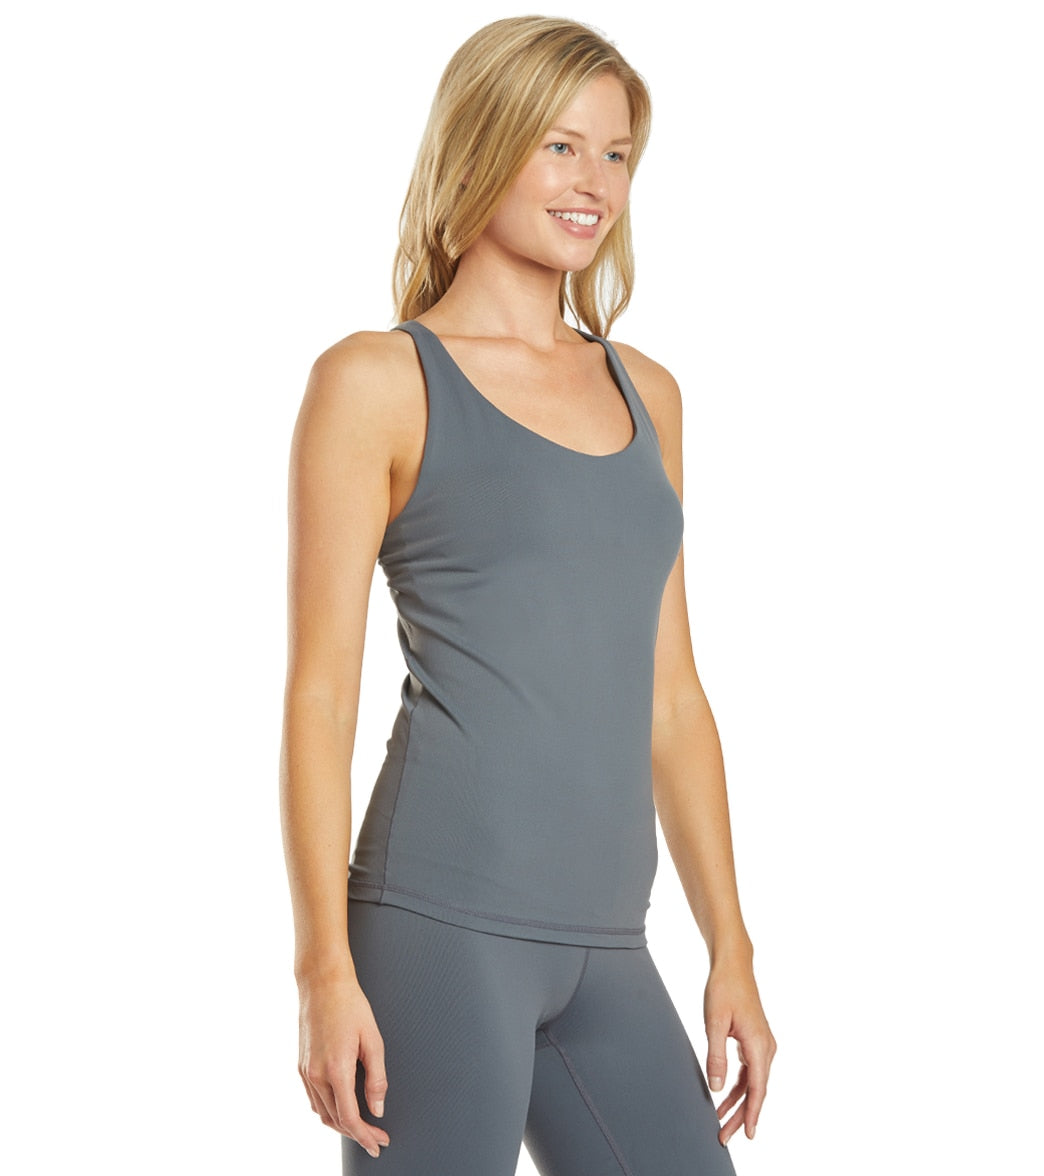 Prana Everyday Support Yoga Top At Yogaoutlet Com Free Shipping